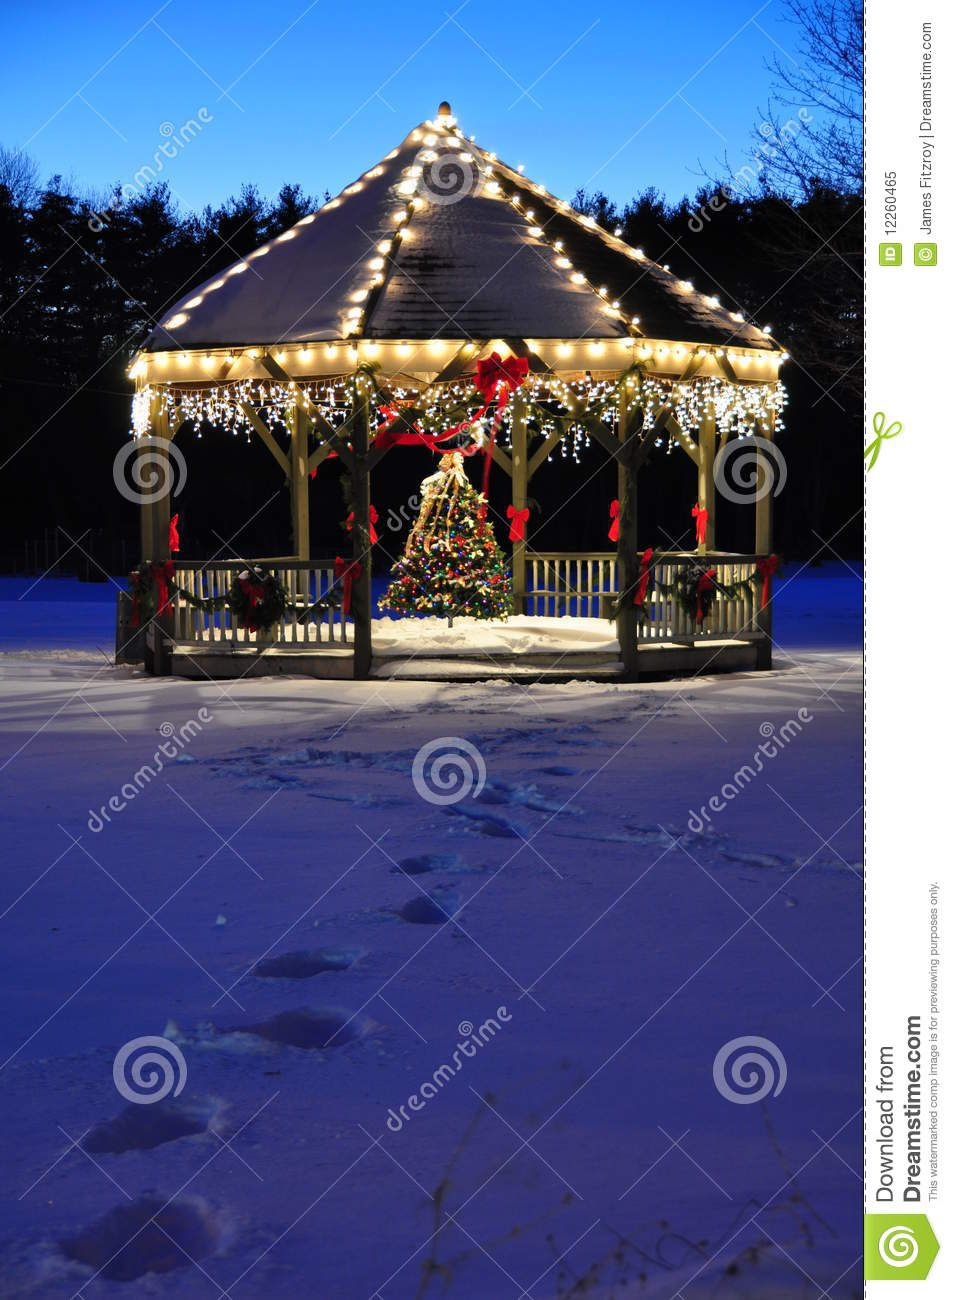 Old Town Gazebo New England Town Gazebo Decorated Form Christmas In The Eveni Outdoor Christmas Decorations Yard Christmas Village Houses Gazebo Decorations